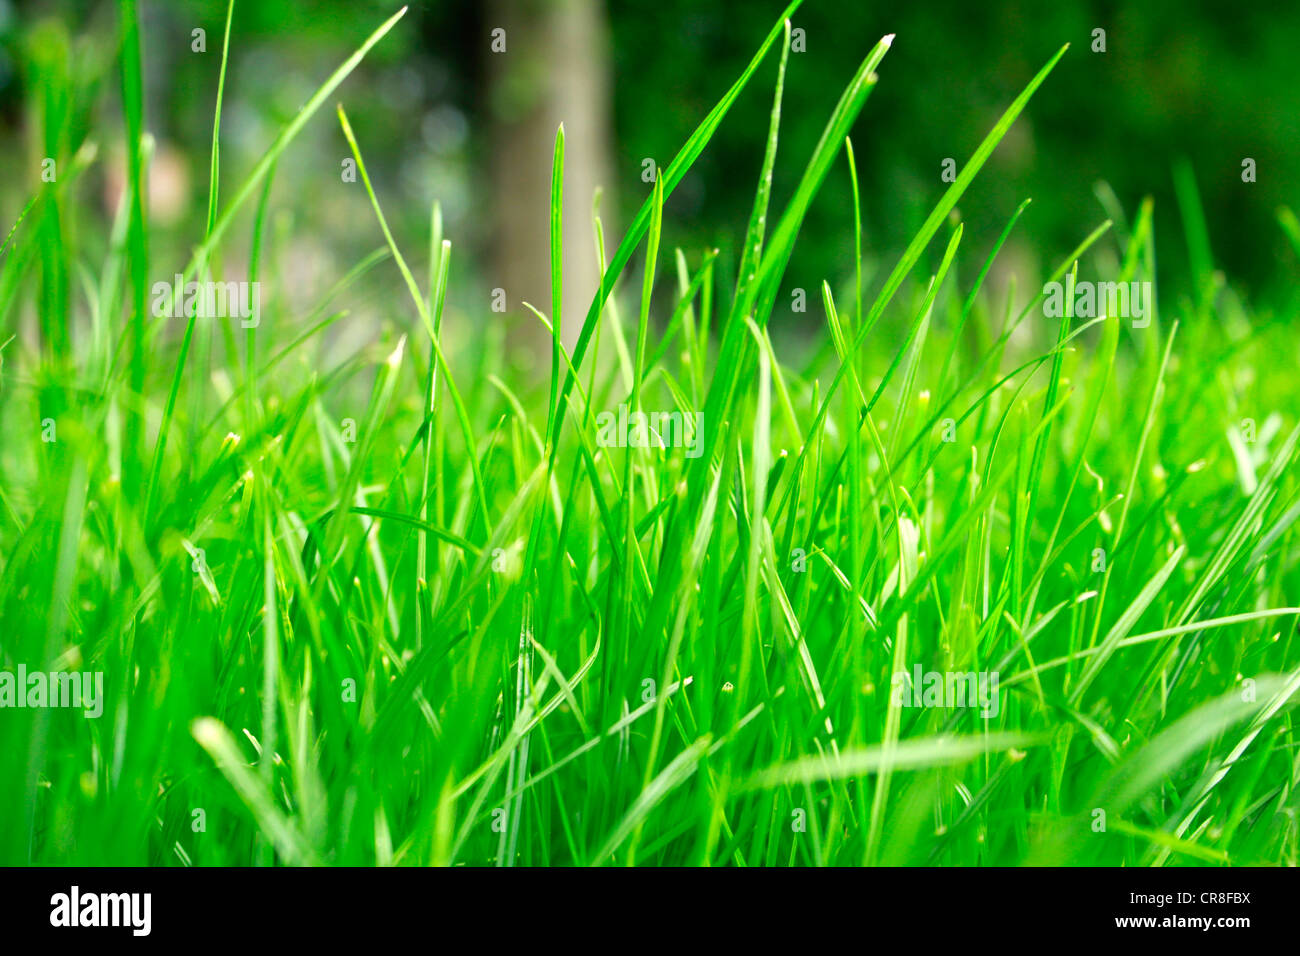 Green grass close up Photo Stock